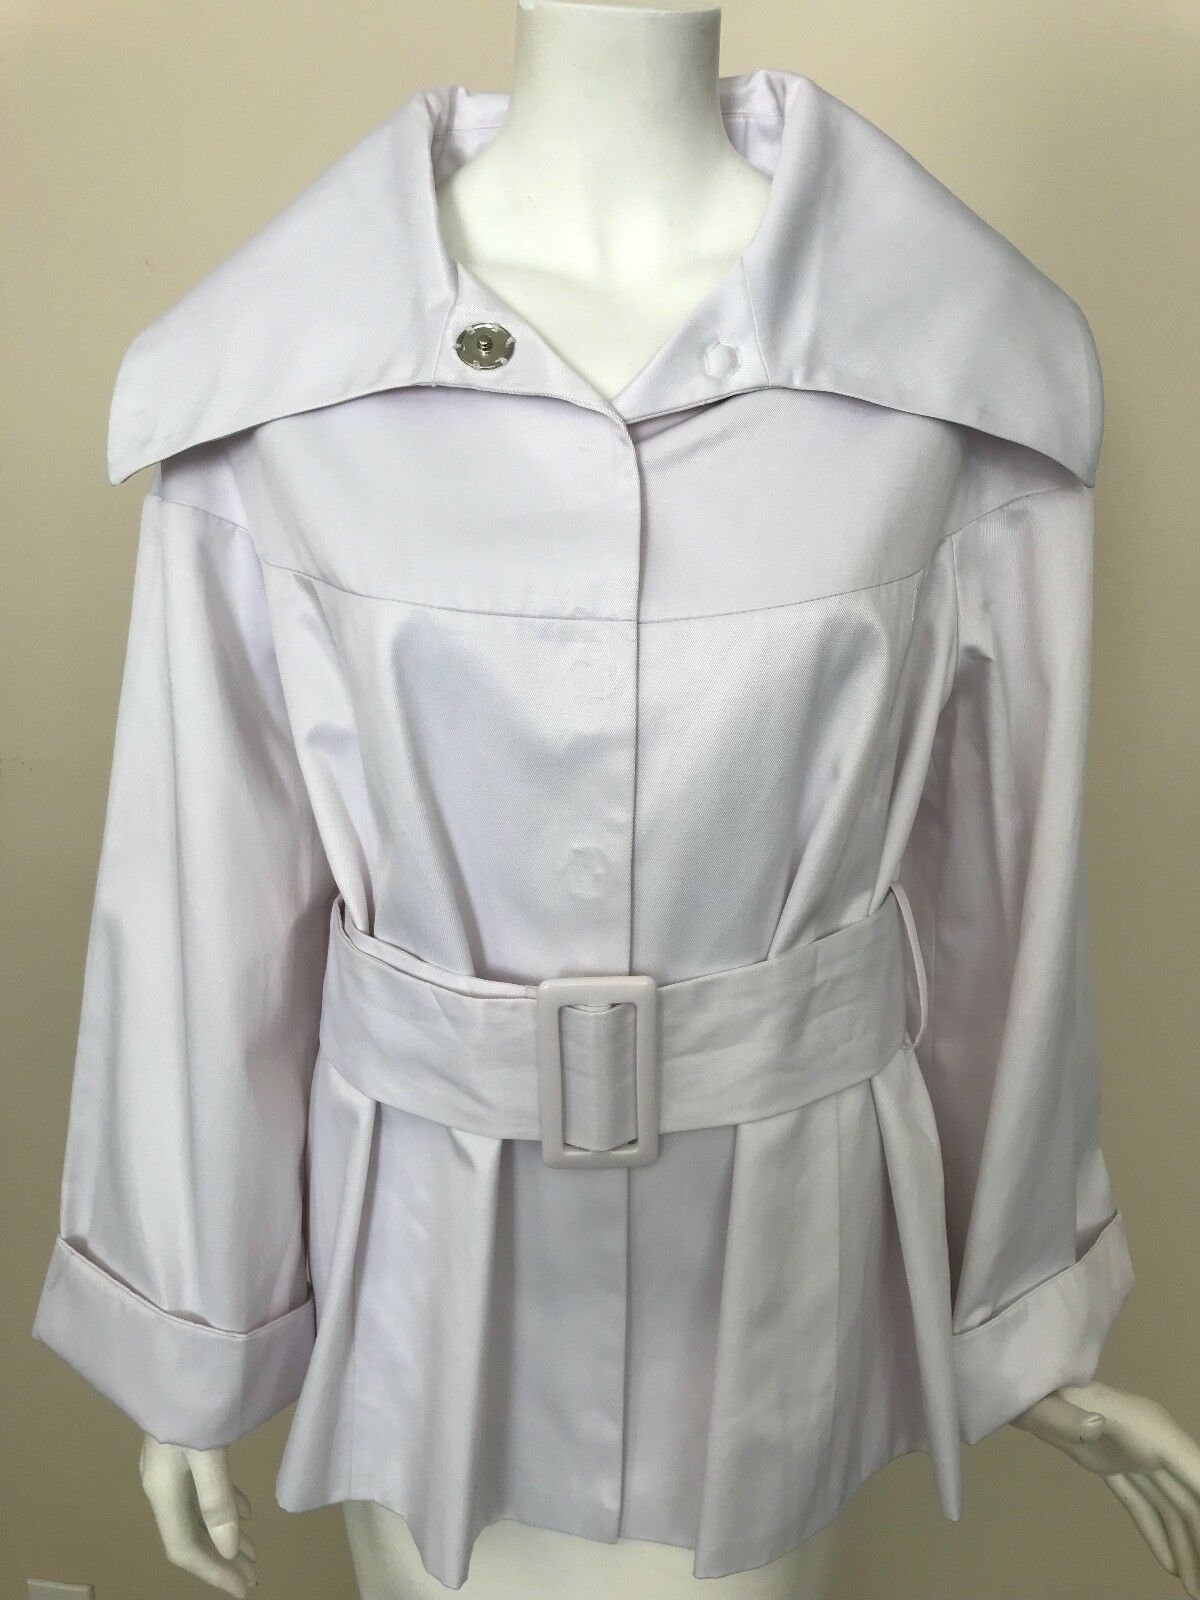 KENAR New White Light Weight Coat with Wide Collar and Waist Belt Size Large NWT